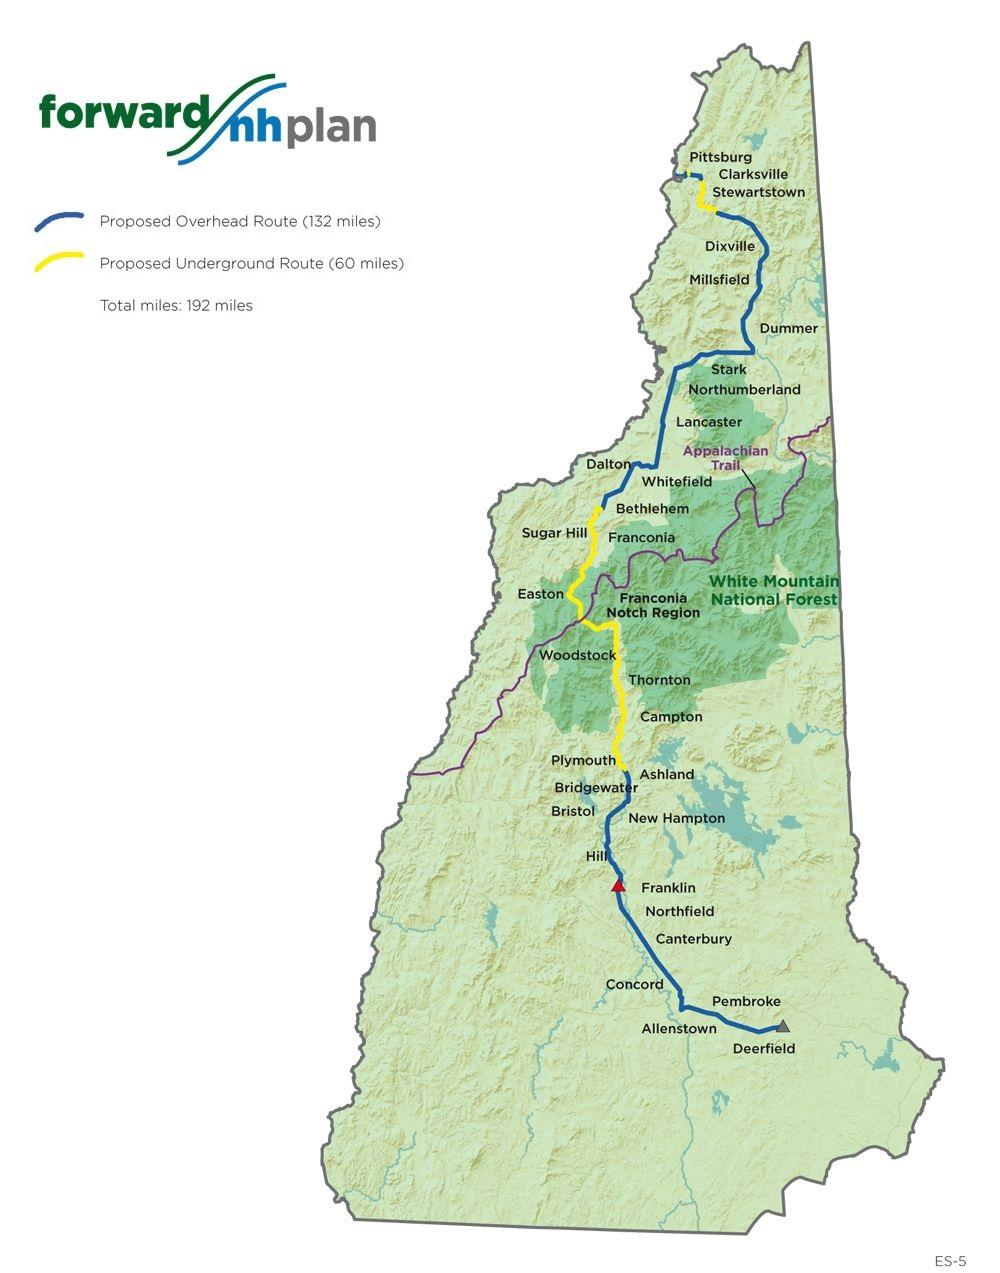 Northern Pass transmission project moves closer to construction with DOE approval